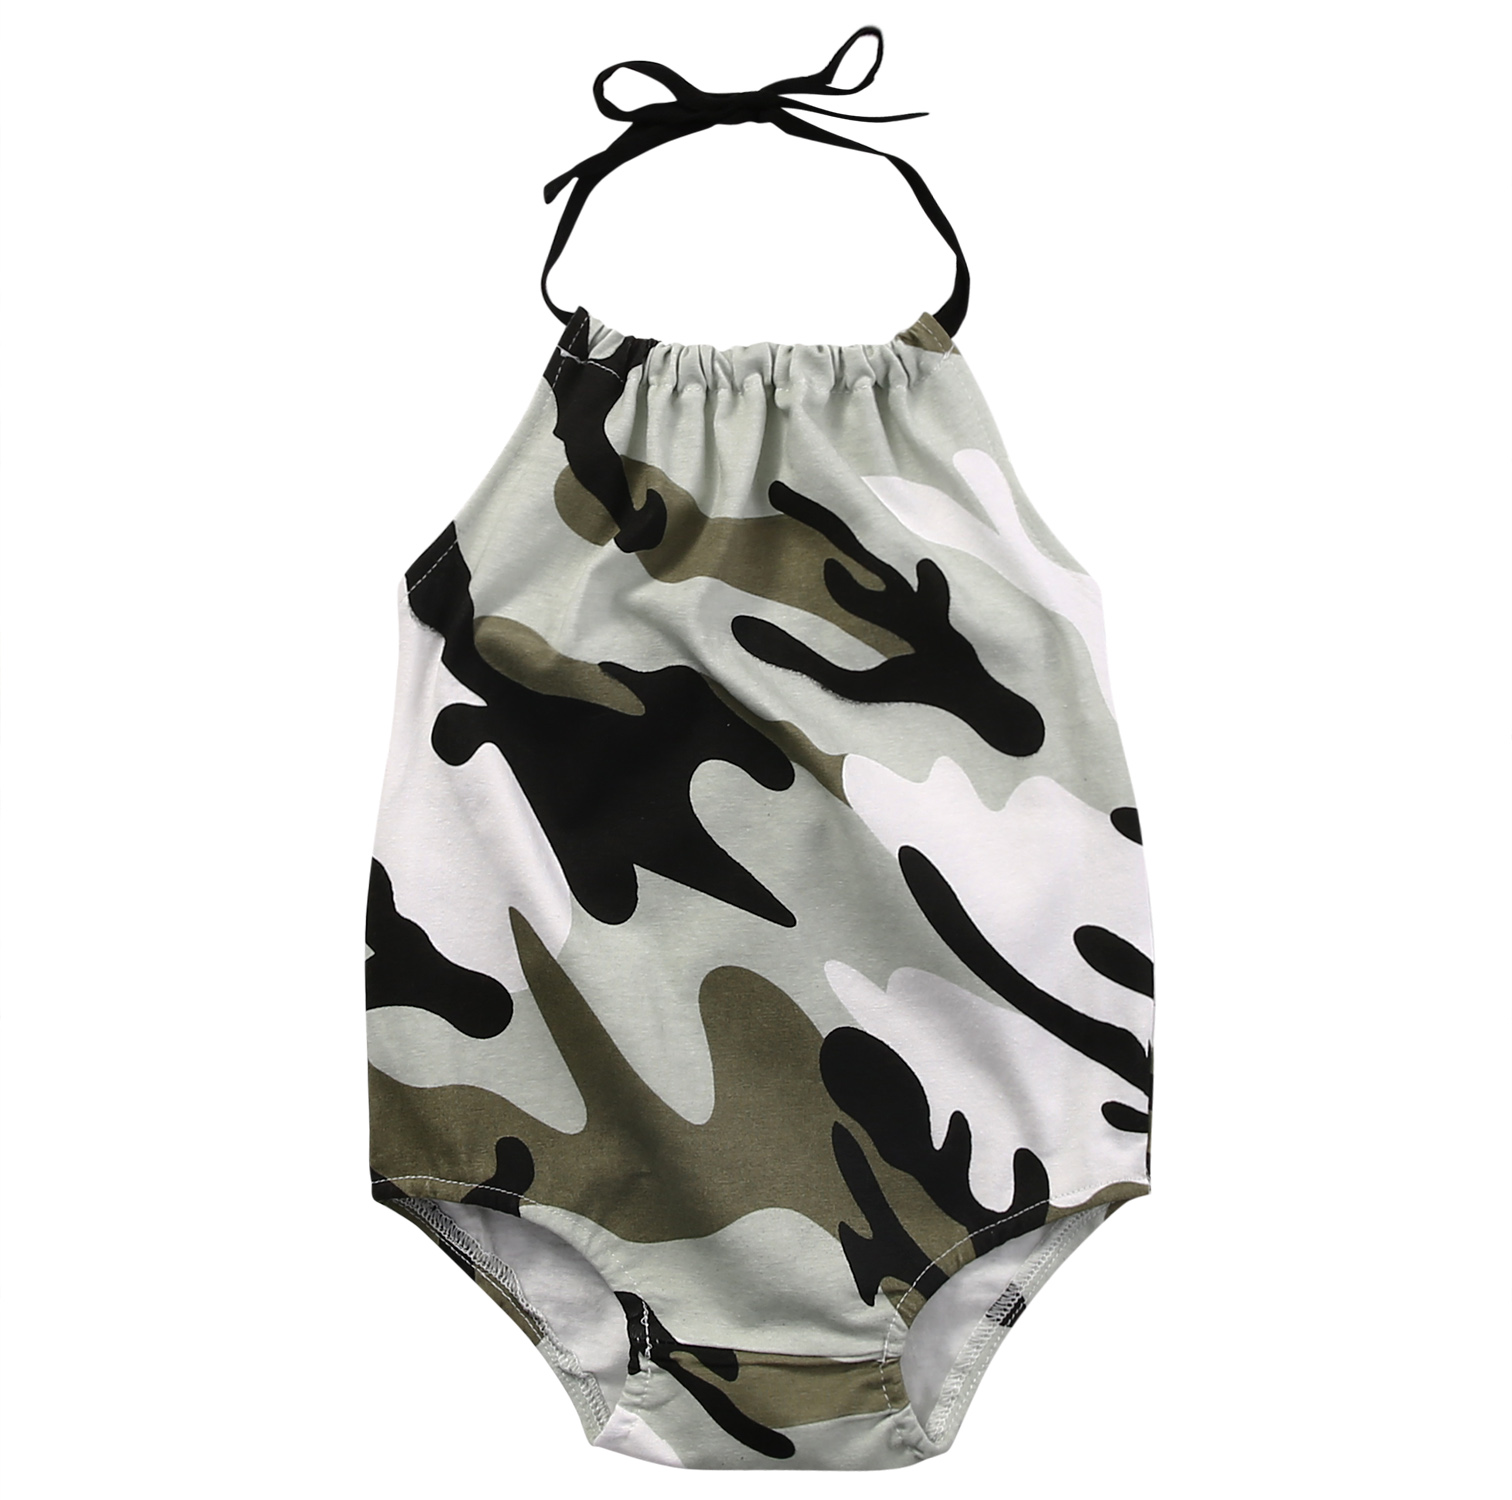 8859ab5eb415 Hot Baby Boy Gallus Bodysuit Baby Girl Summer Sleeveless Jumpsuit Toddler  Camouflag Outfits Clothes